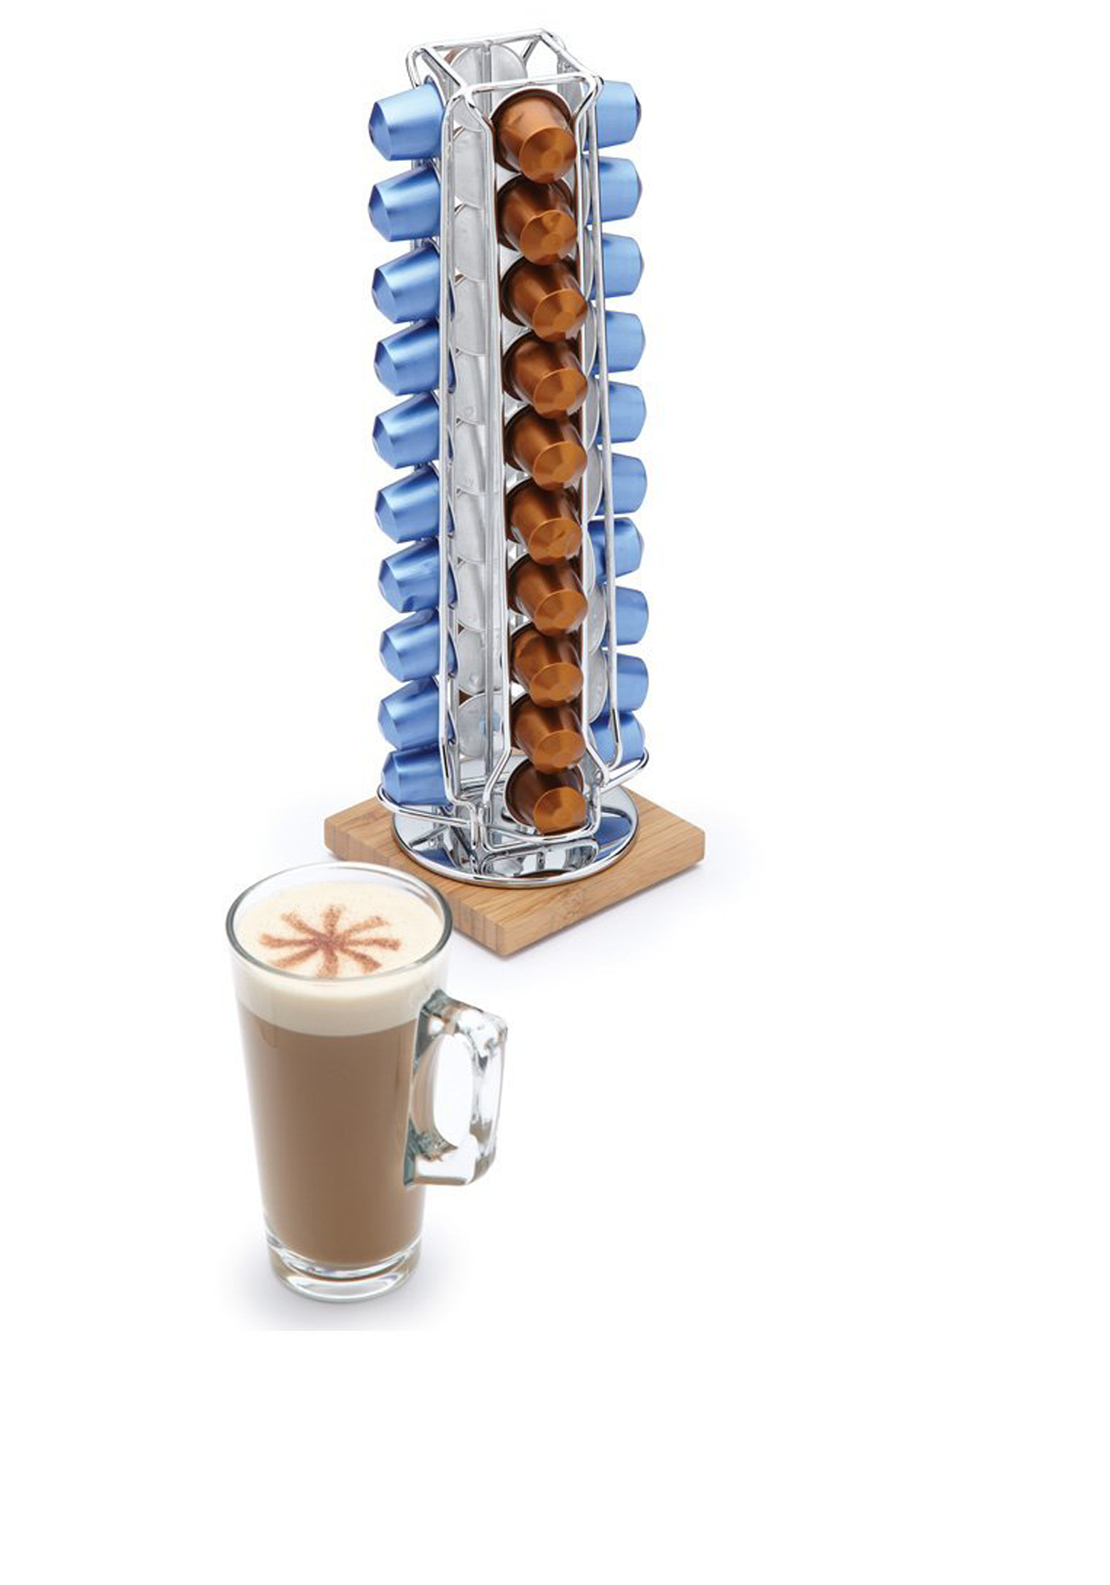 Le Xpress 40 Coffee Capsule Dispenser